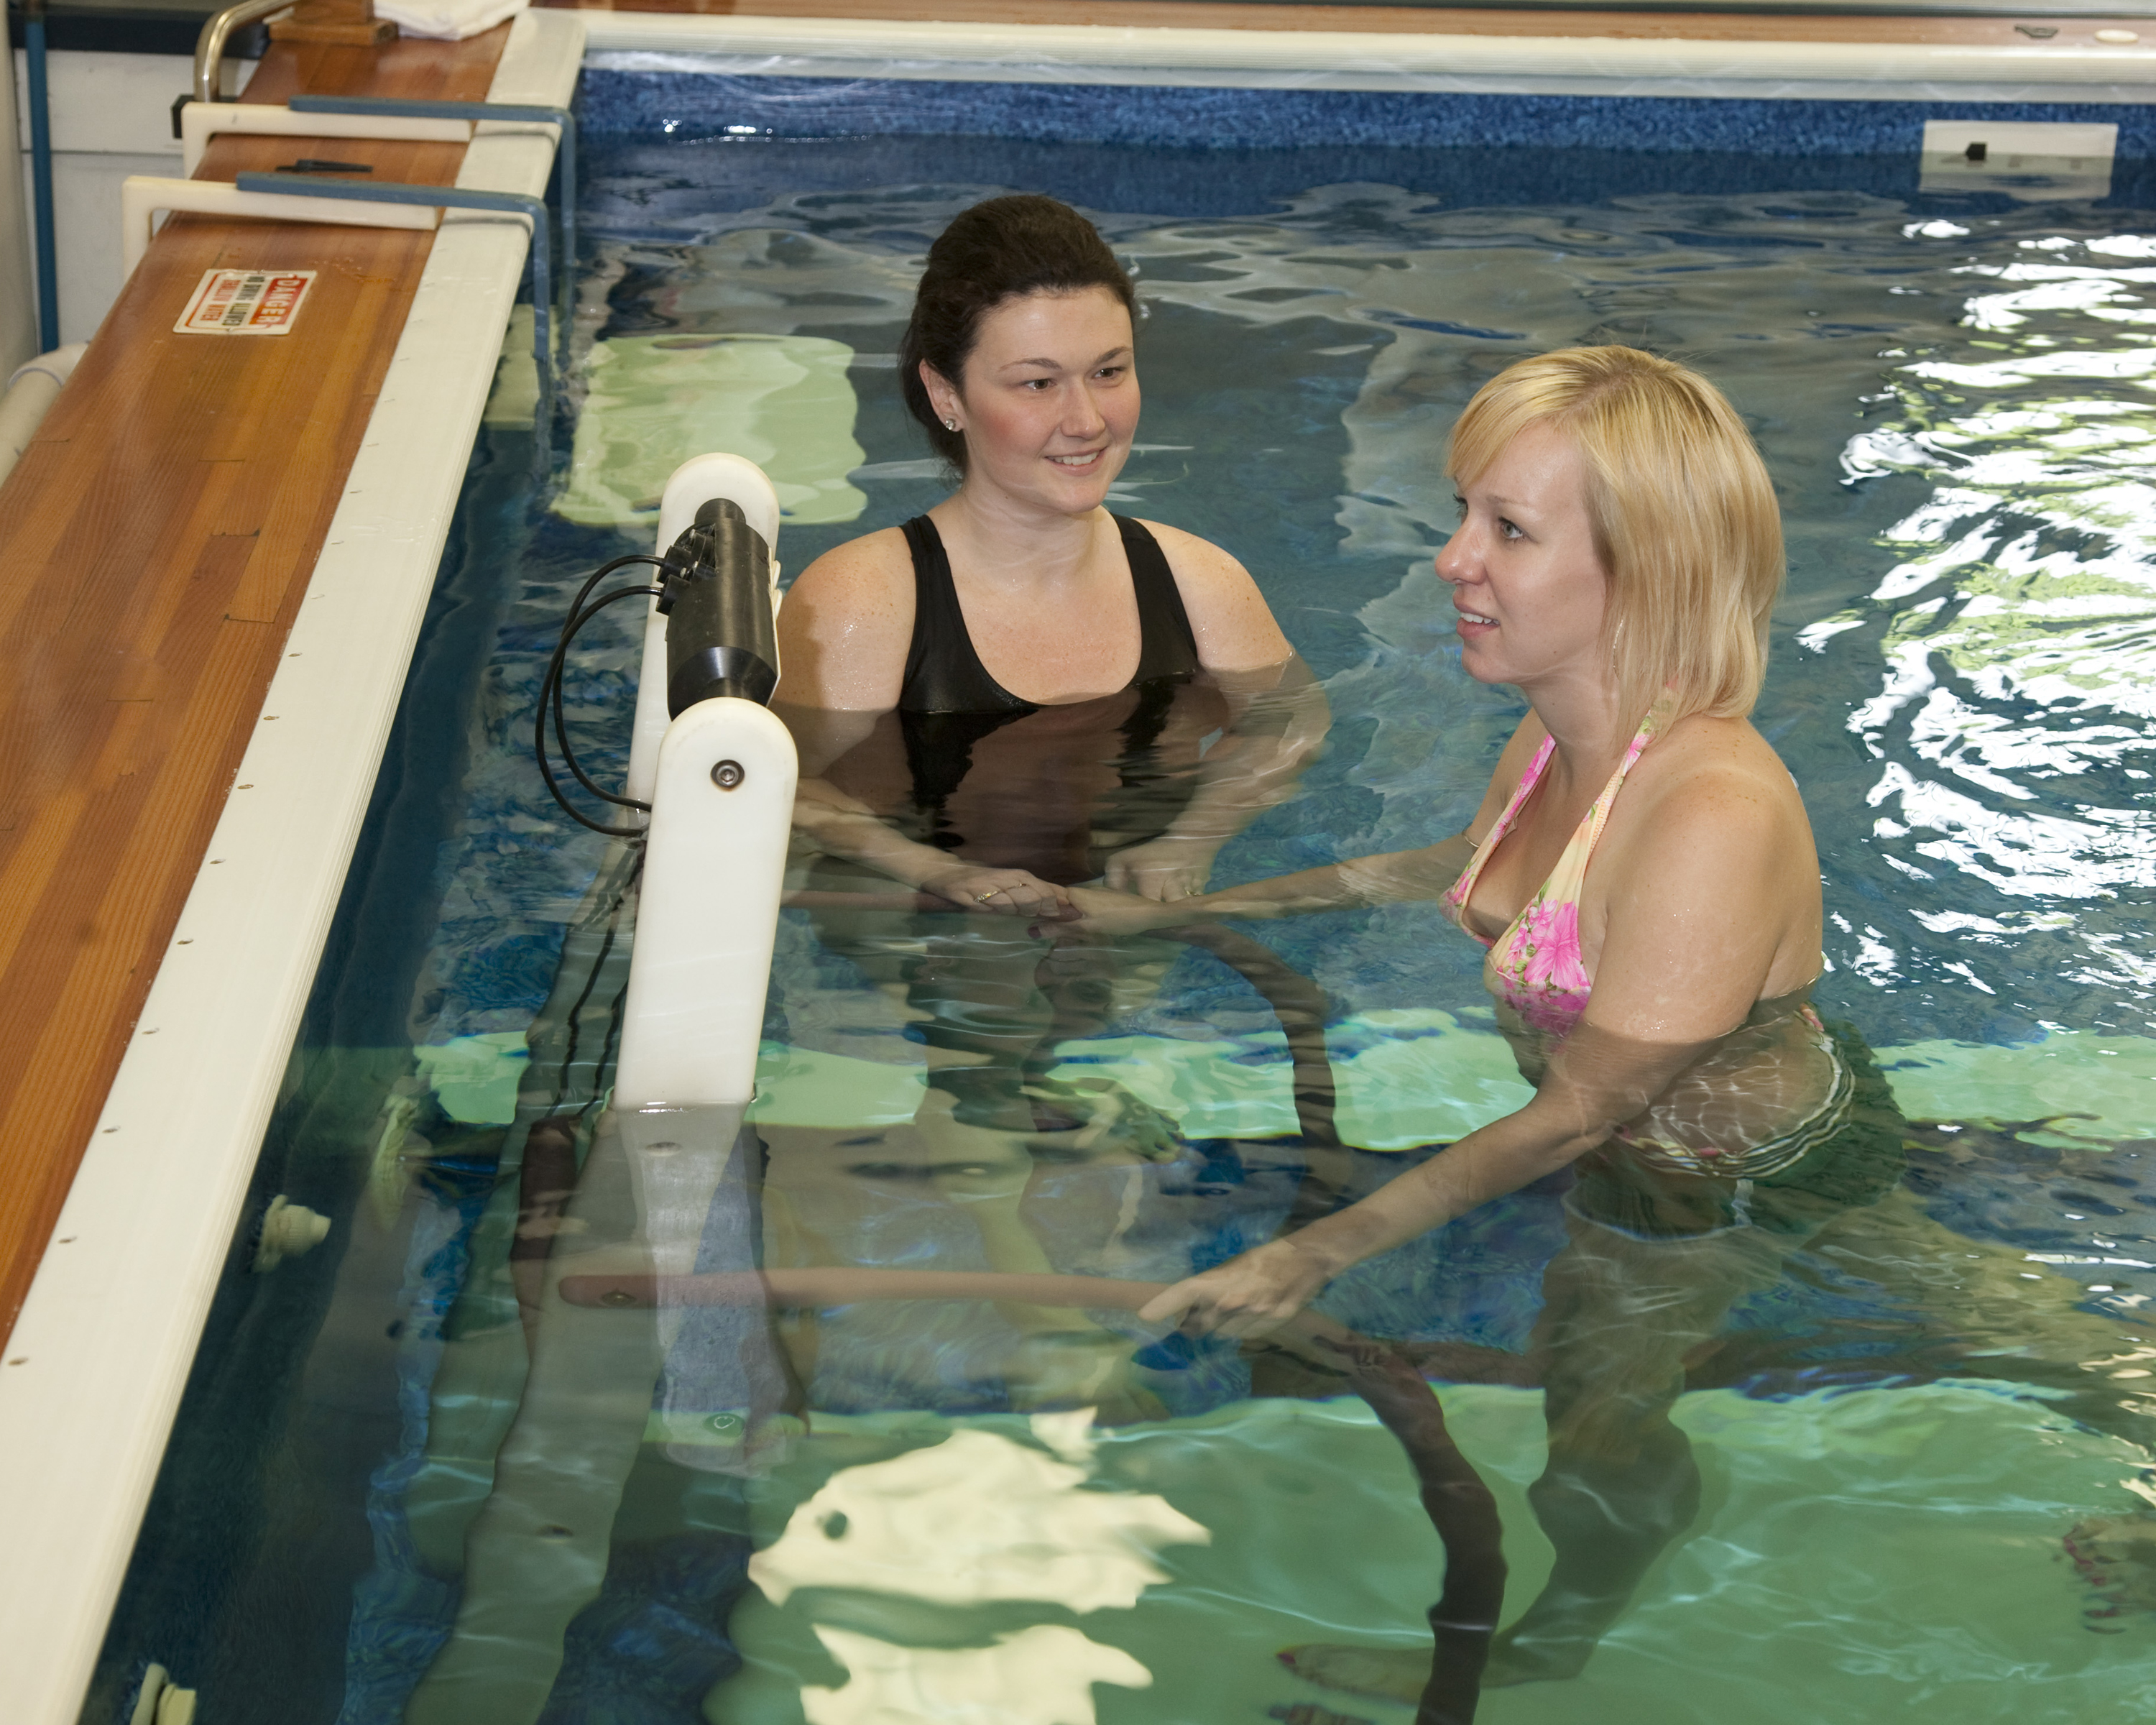 PPT-Aquatic-Therapy_06.jpg